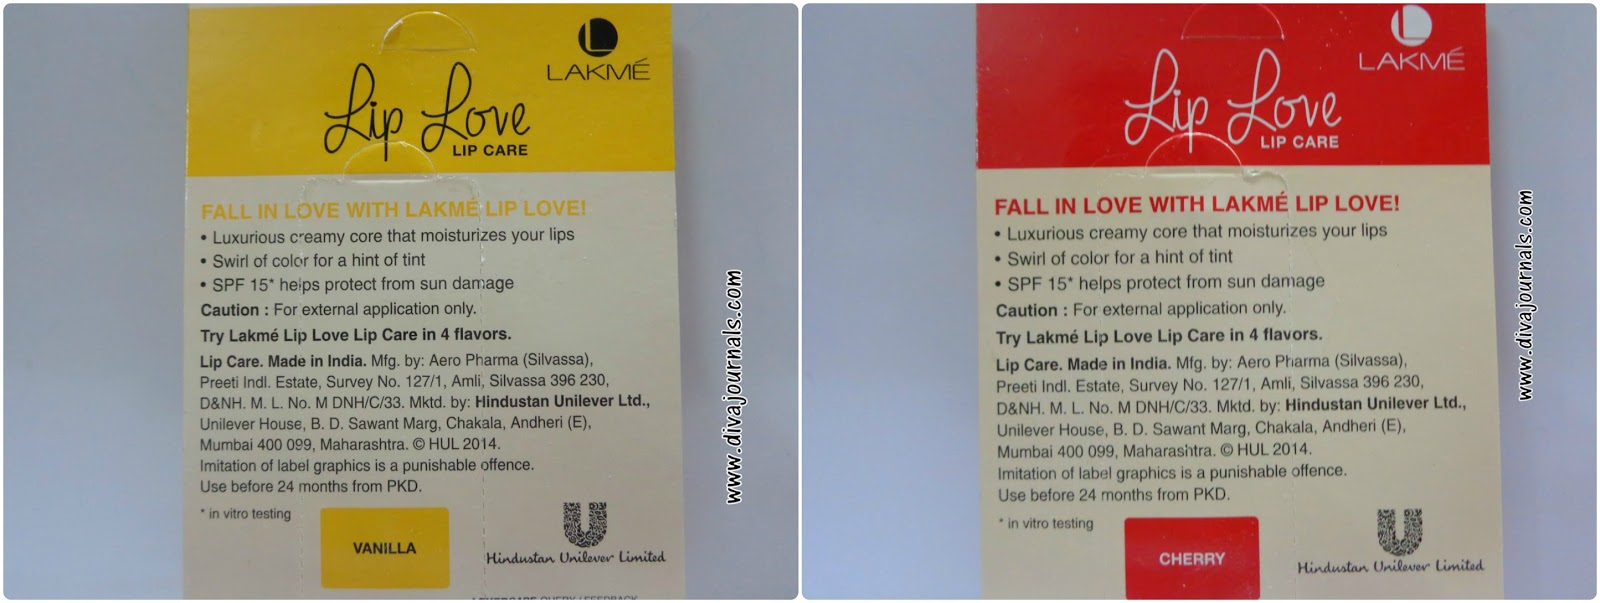 Lakme Lip Love Lip Care Review